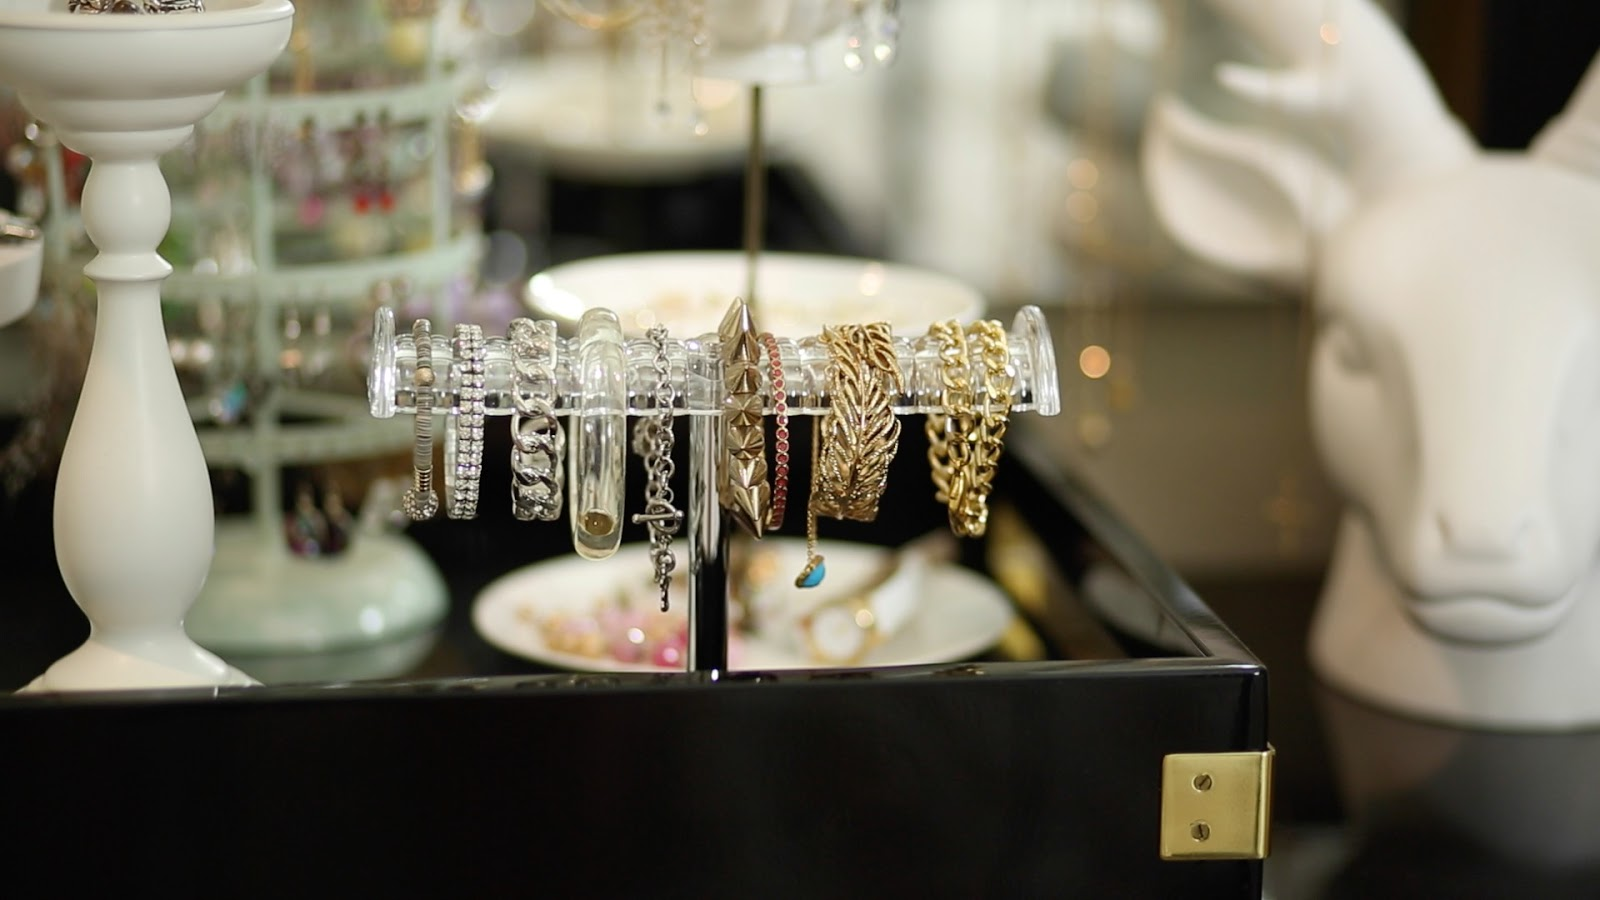 Close-up on a bracelet rack with gold and silver jewelry on display.